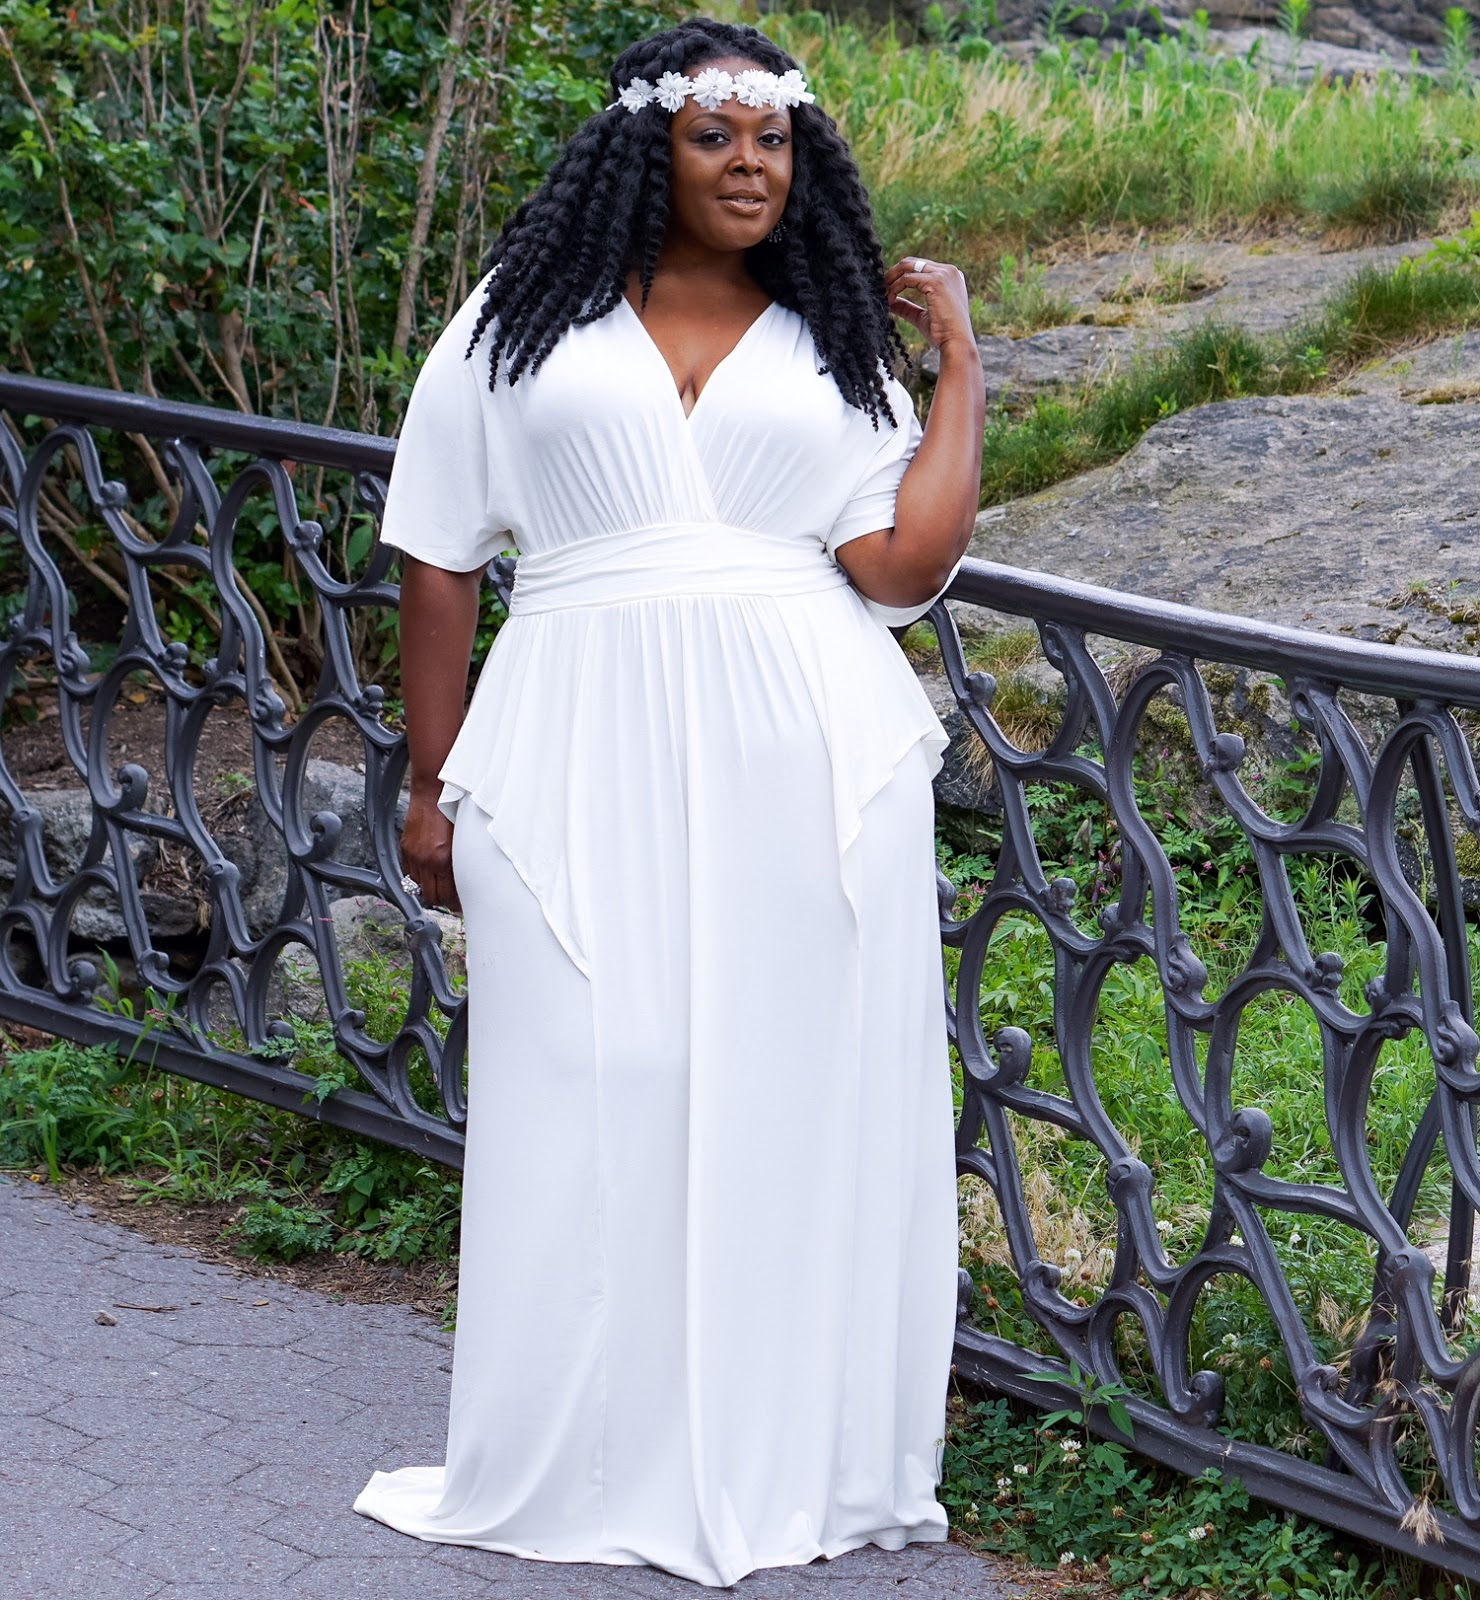 white plus size dress, kiyonna white dress, kiyonna white maxidress, white plus size dress, plus size white maxidress